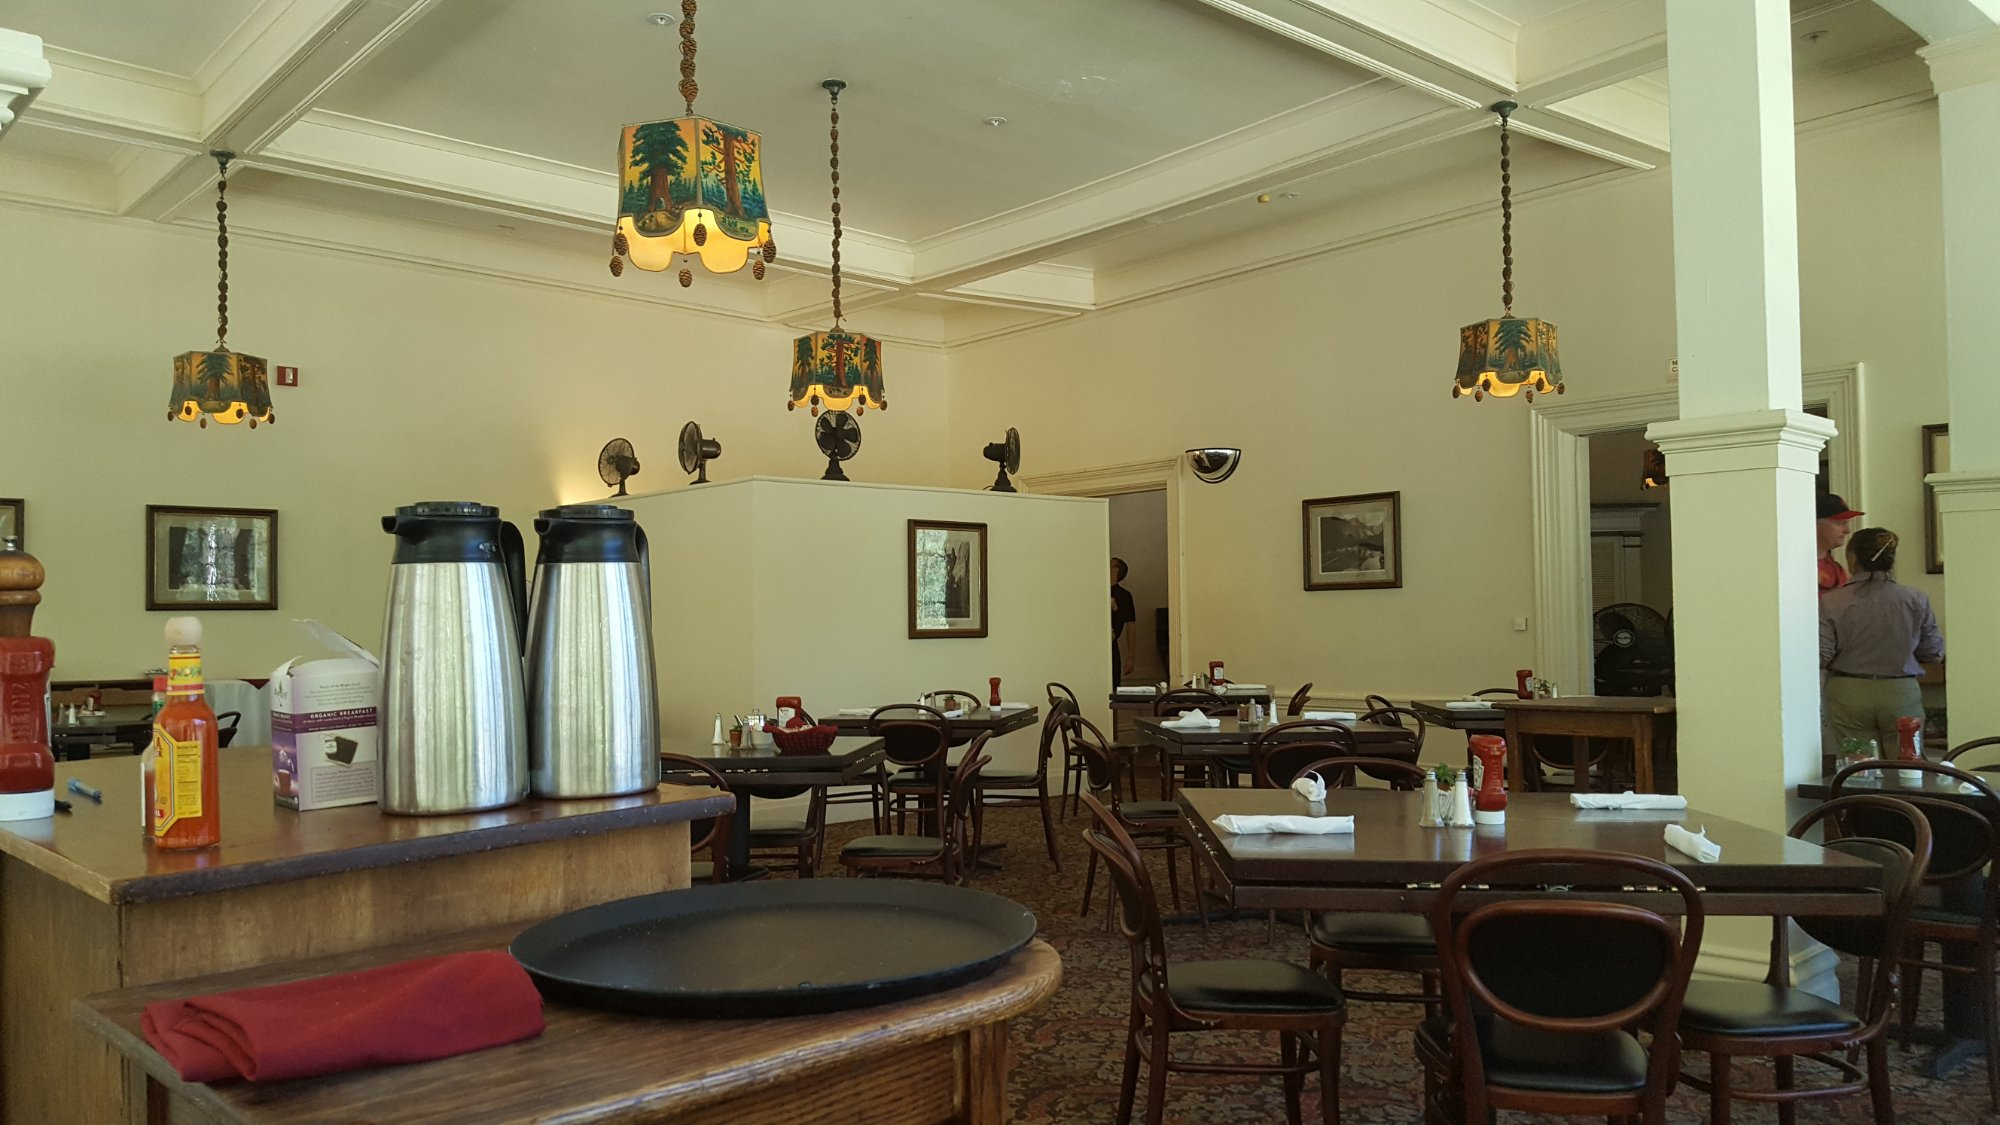 Big trees lodge dining room yosemite nationalpark for Dining room picture 94